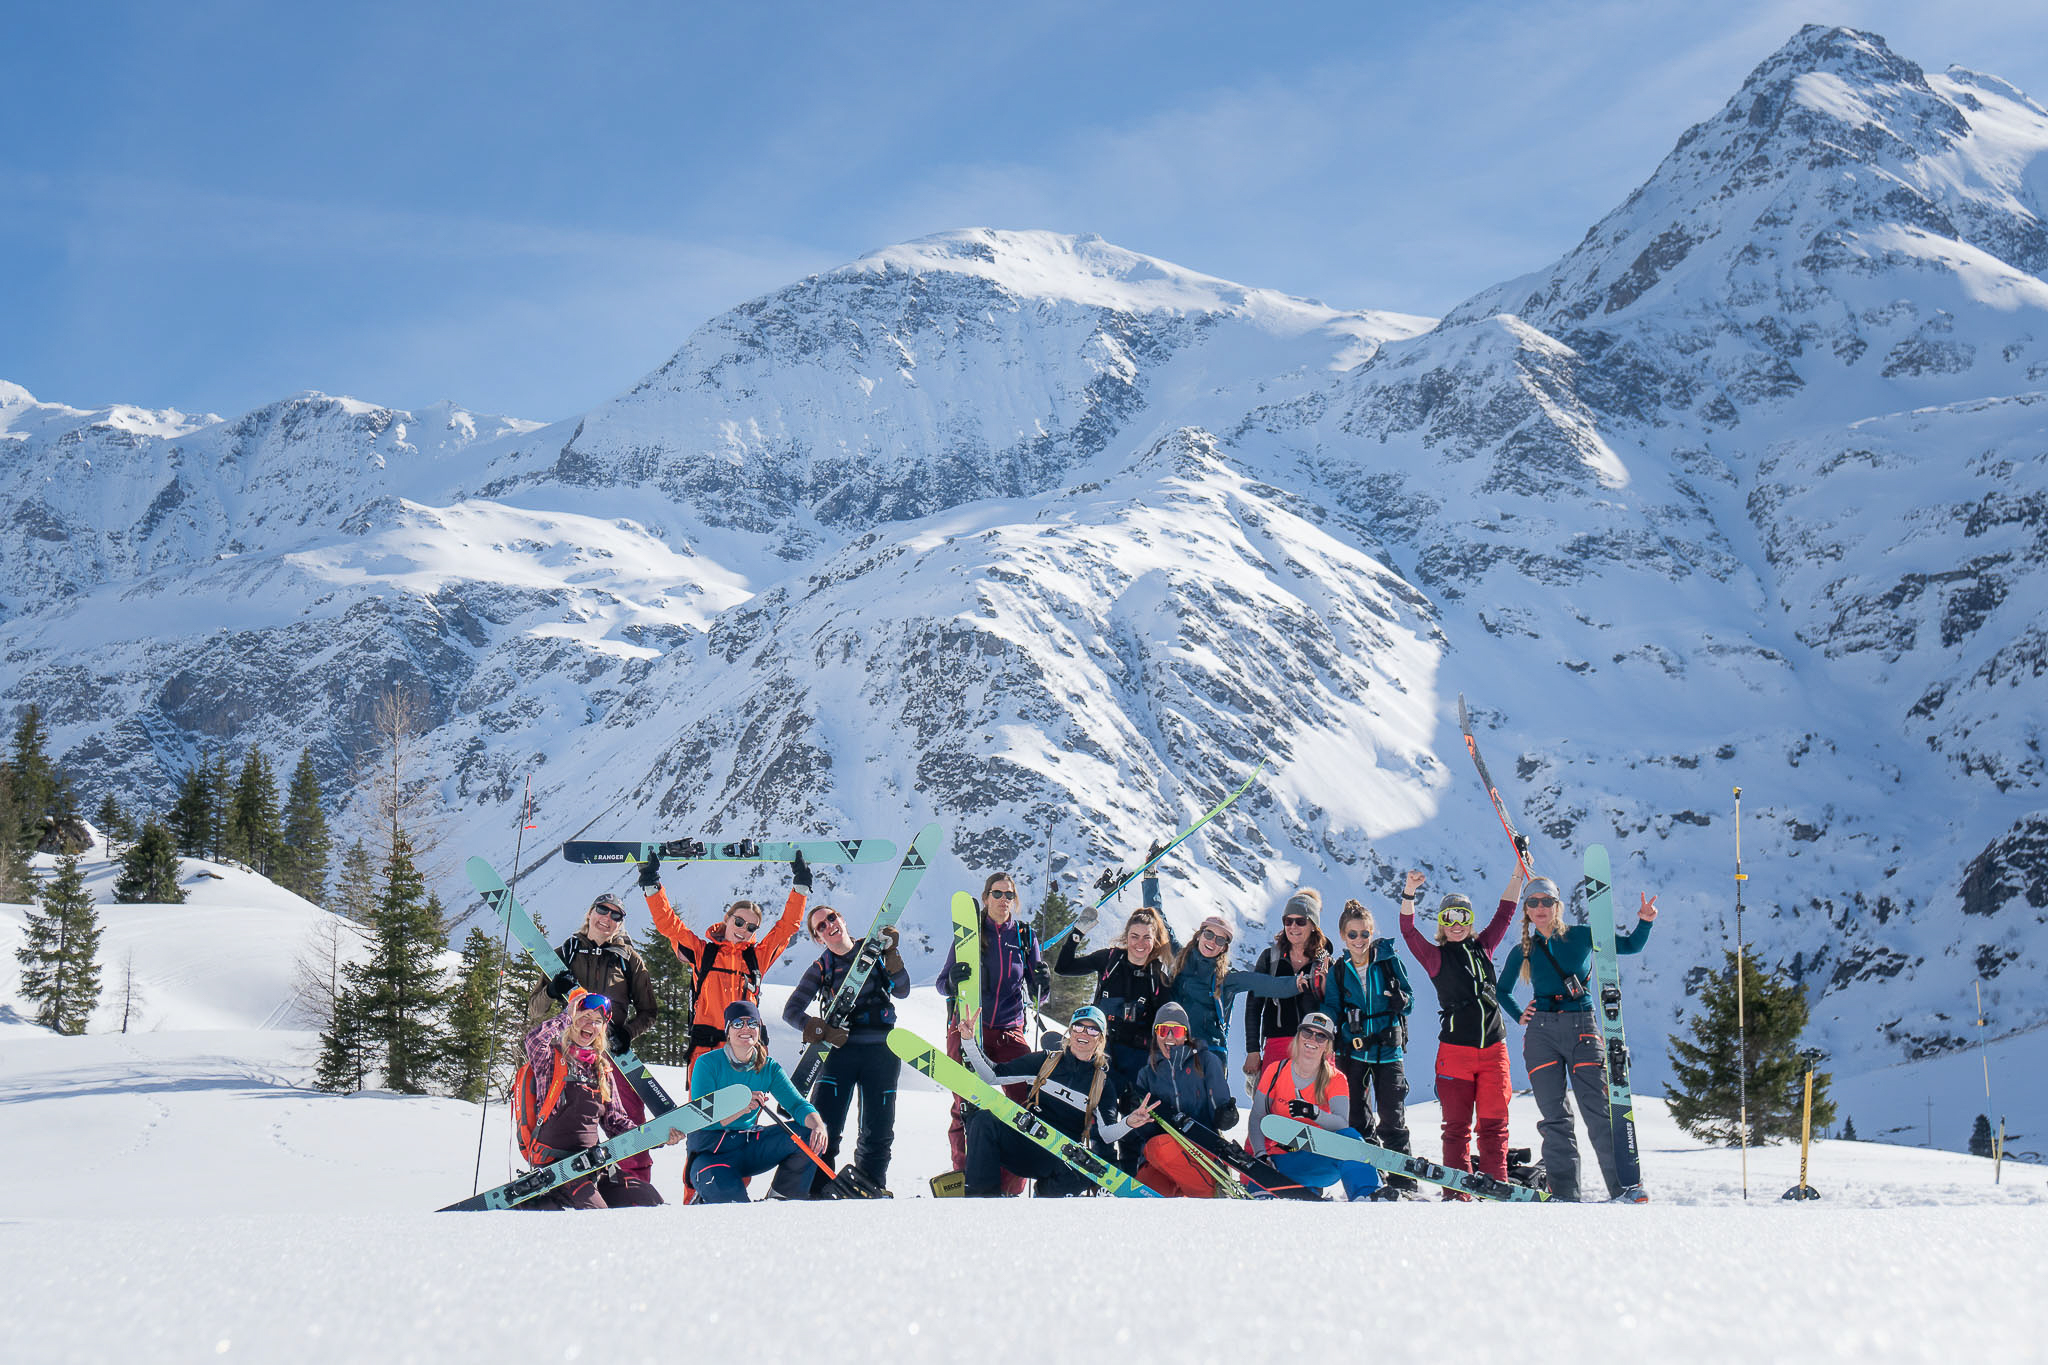 #shadesofwinter Camp Gastein 2019